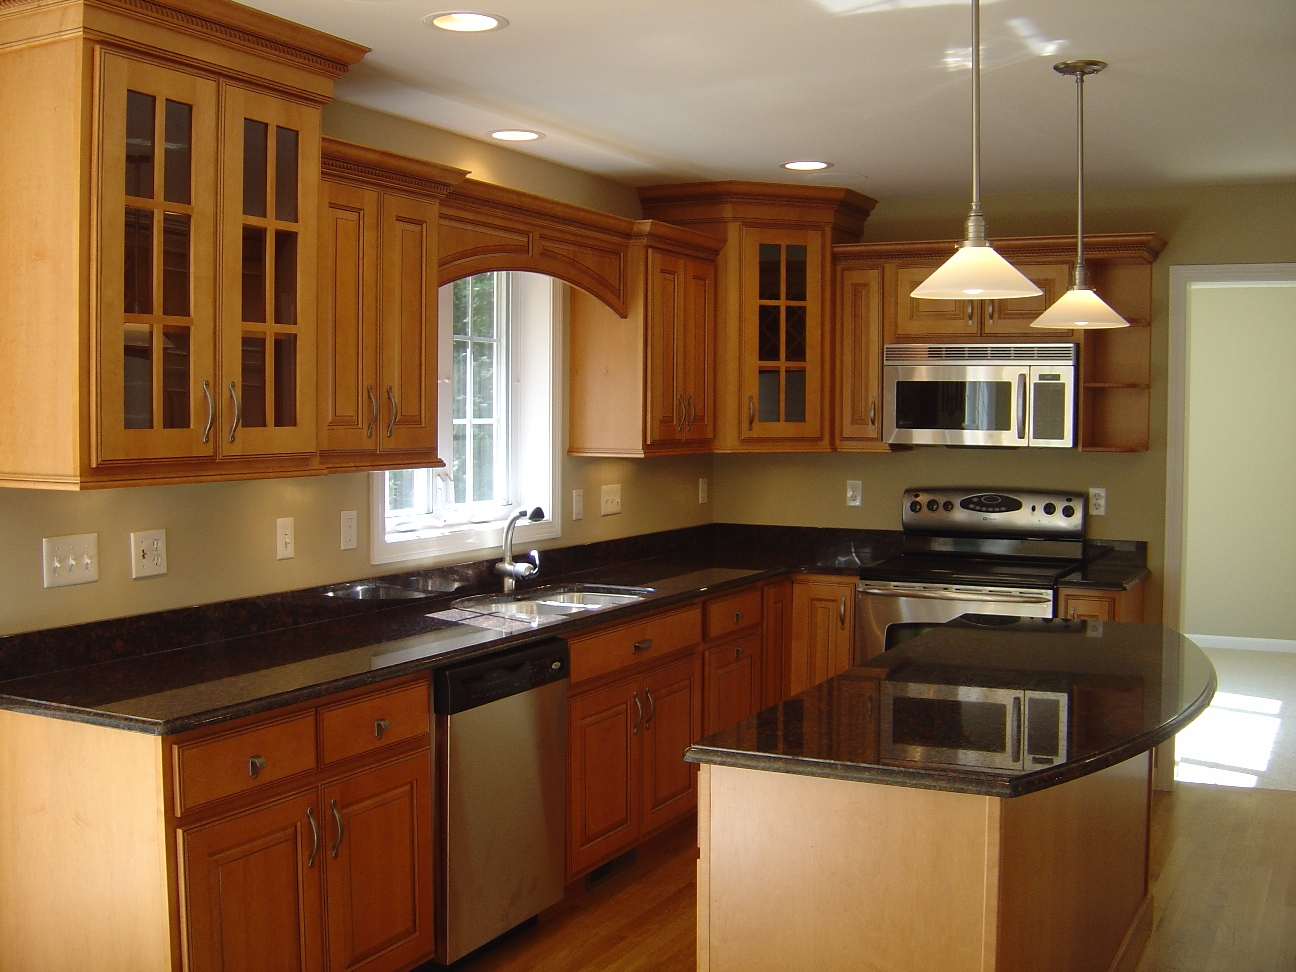 Kitchen designs photos find kitchen designs for Kitchen remodel styles